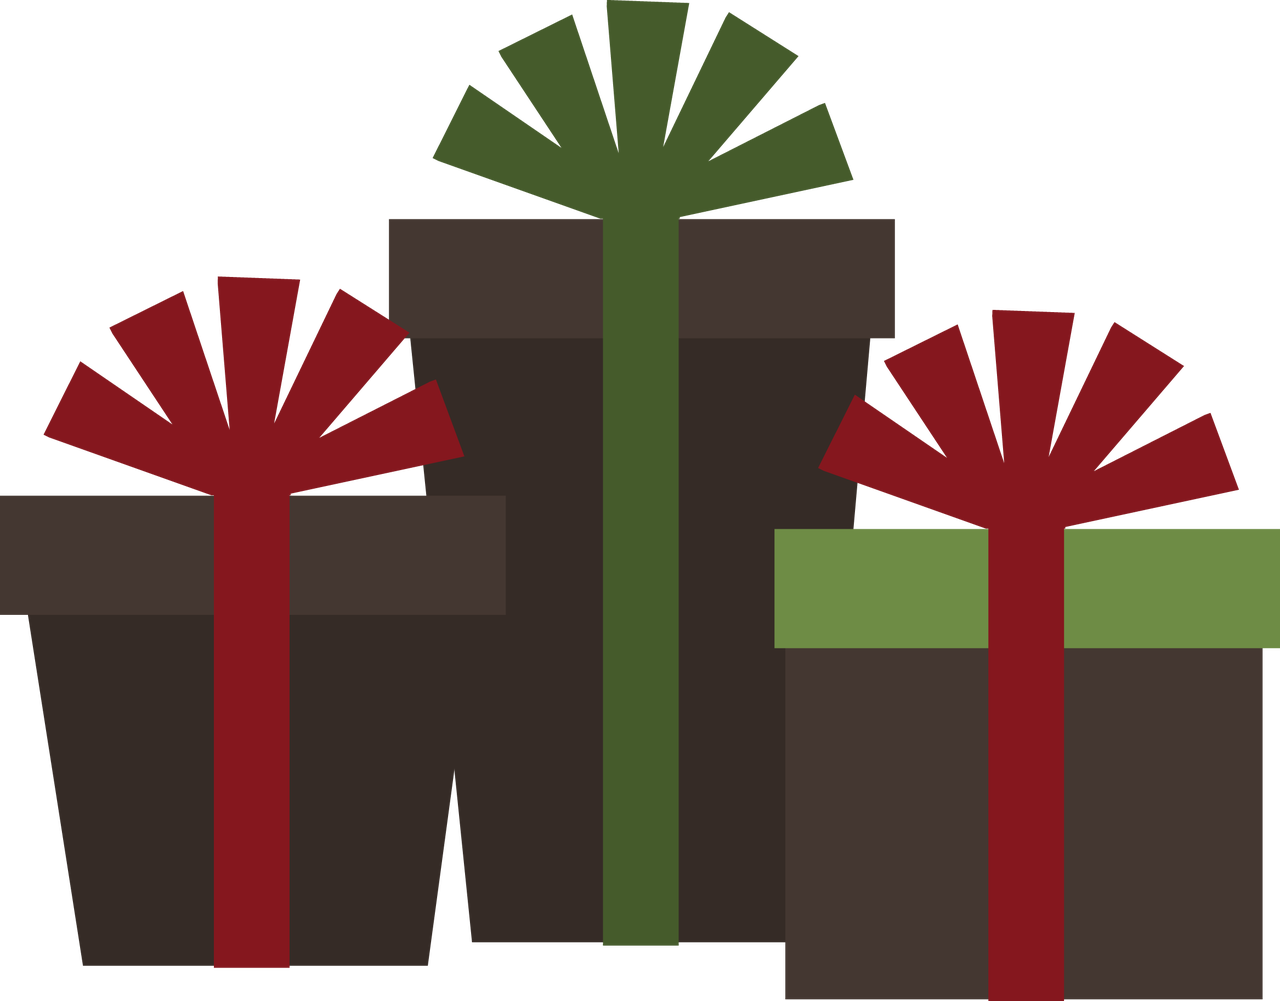 Ppbn designs christmas presents. Winter clipart plant